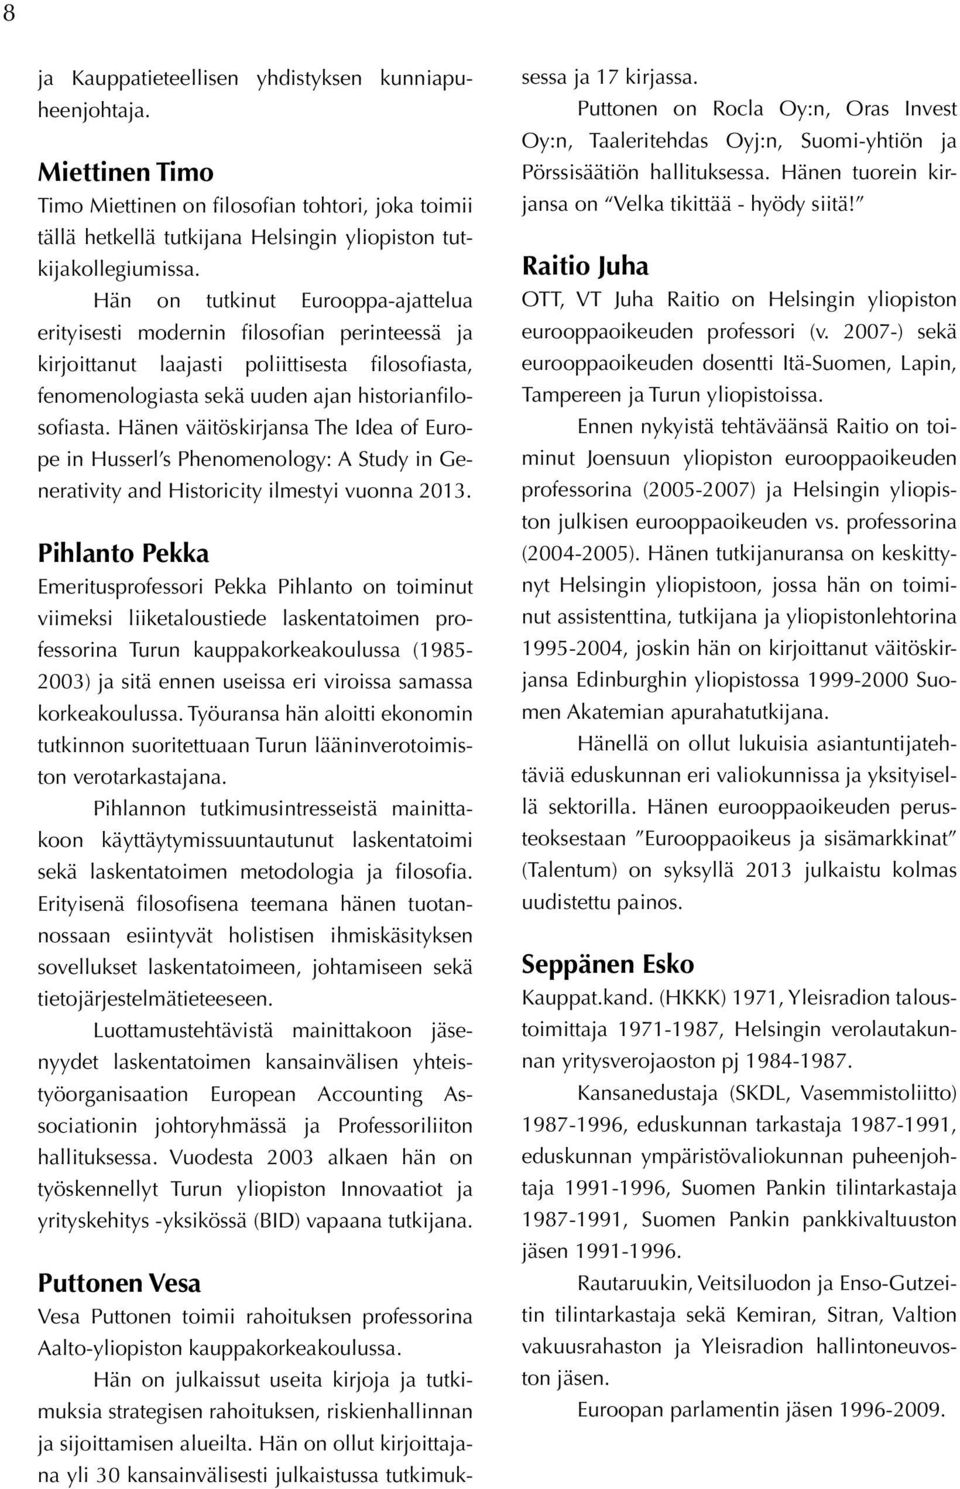 Hänen väitöskirjansa The Idea of Europe in Husserl s Phenomenology: A Study in Generativity and Historicity ilmestyi vuonna 2013.